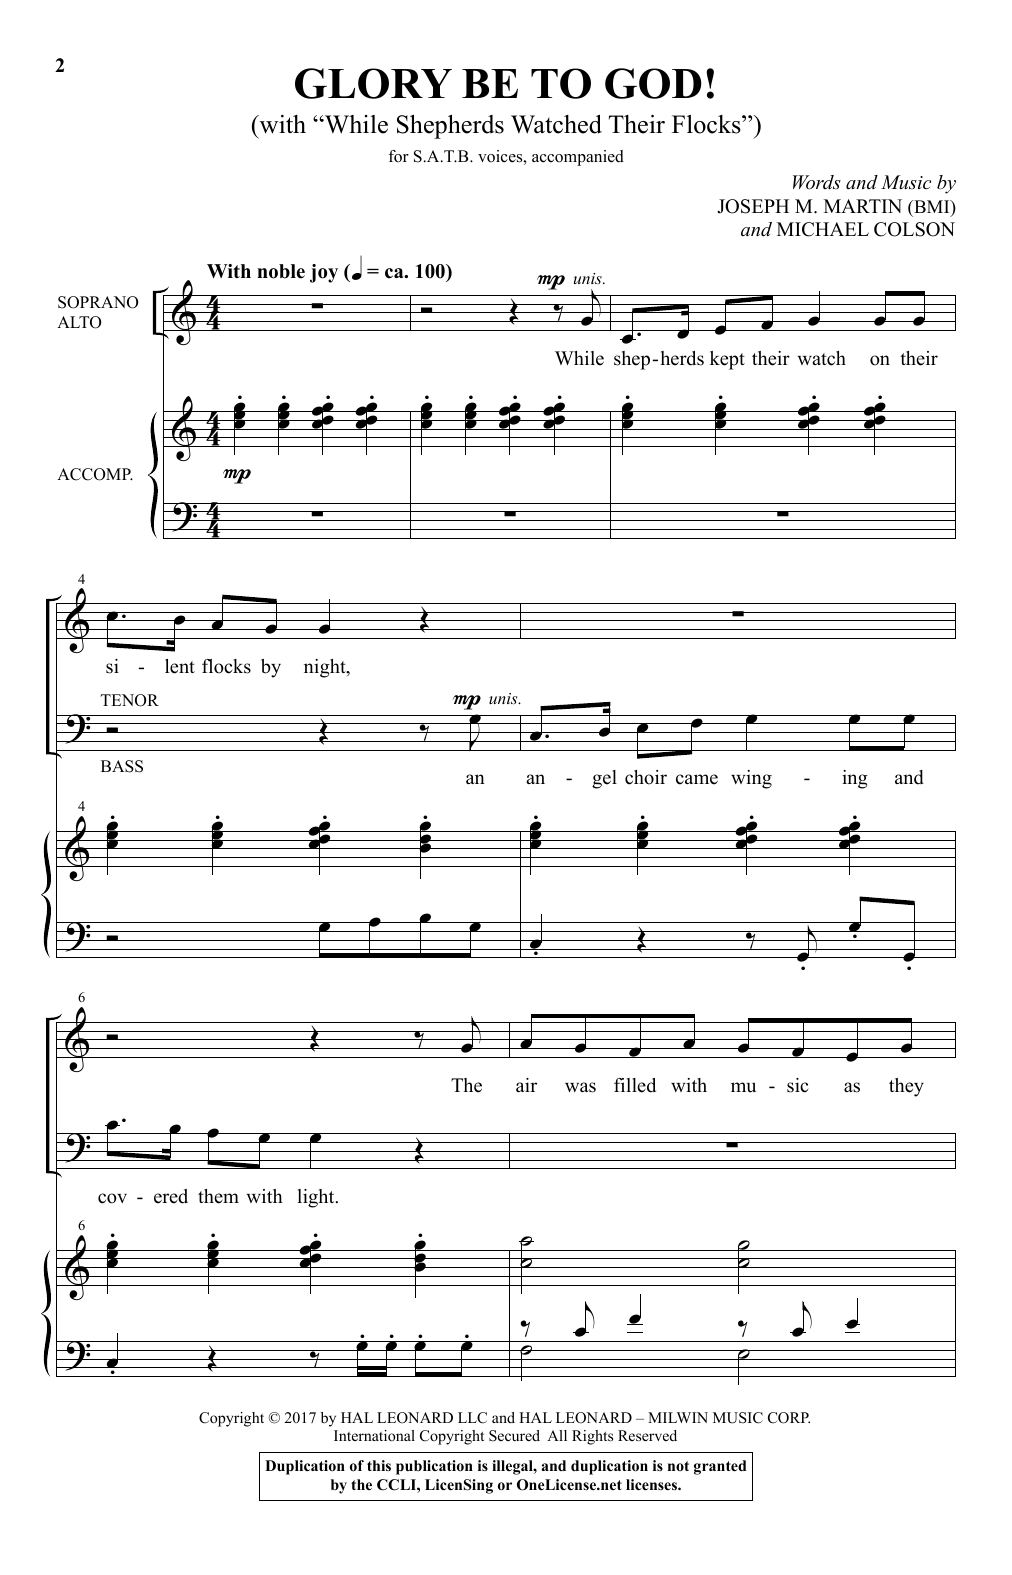 Glory Be To God! (With While Shepherds Watched Their Flocks) Sheet Music